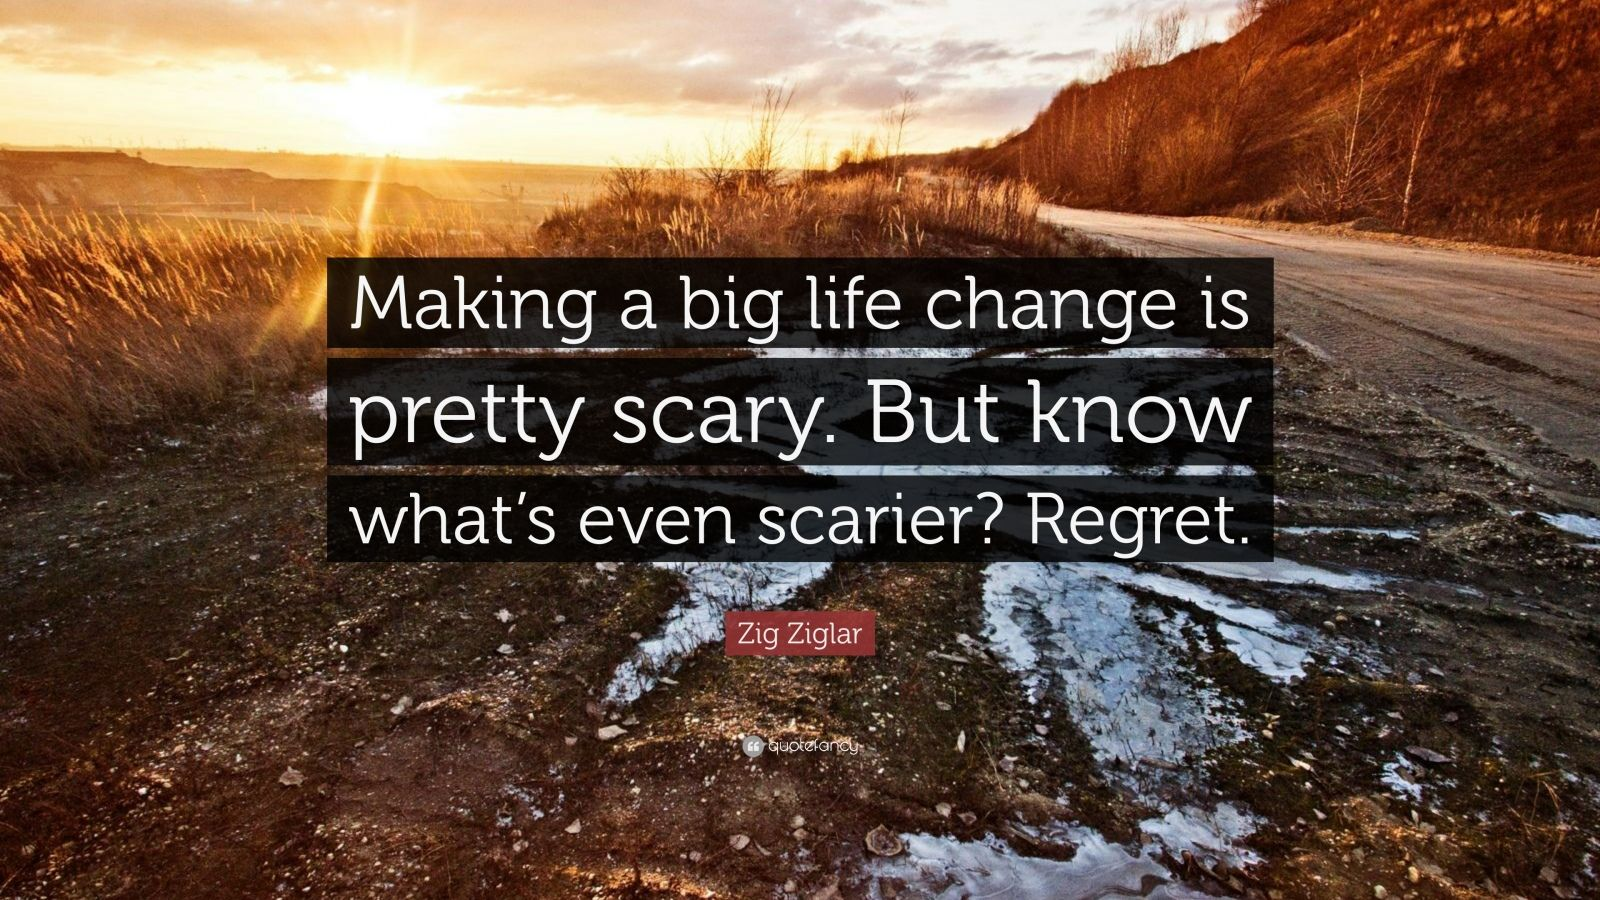 """Zig Ziglar Quote: """"Making a big life change is pretty scary. But know what's even scarier? Regret."""""""